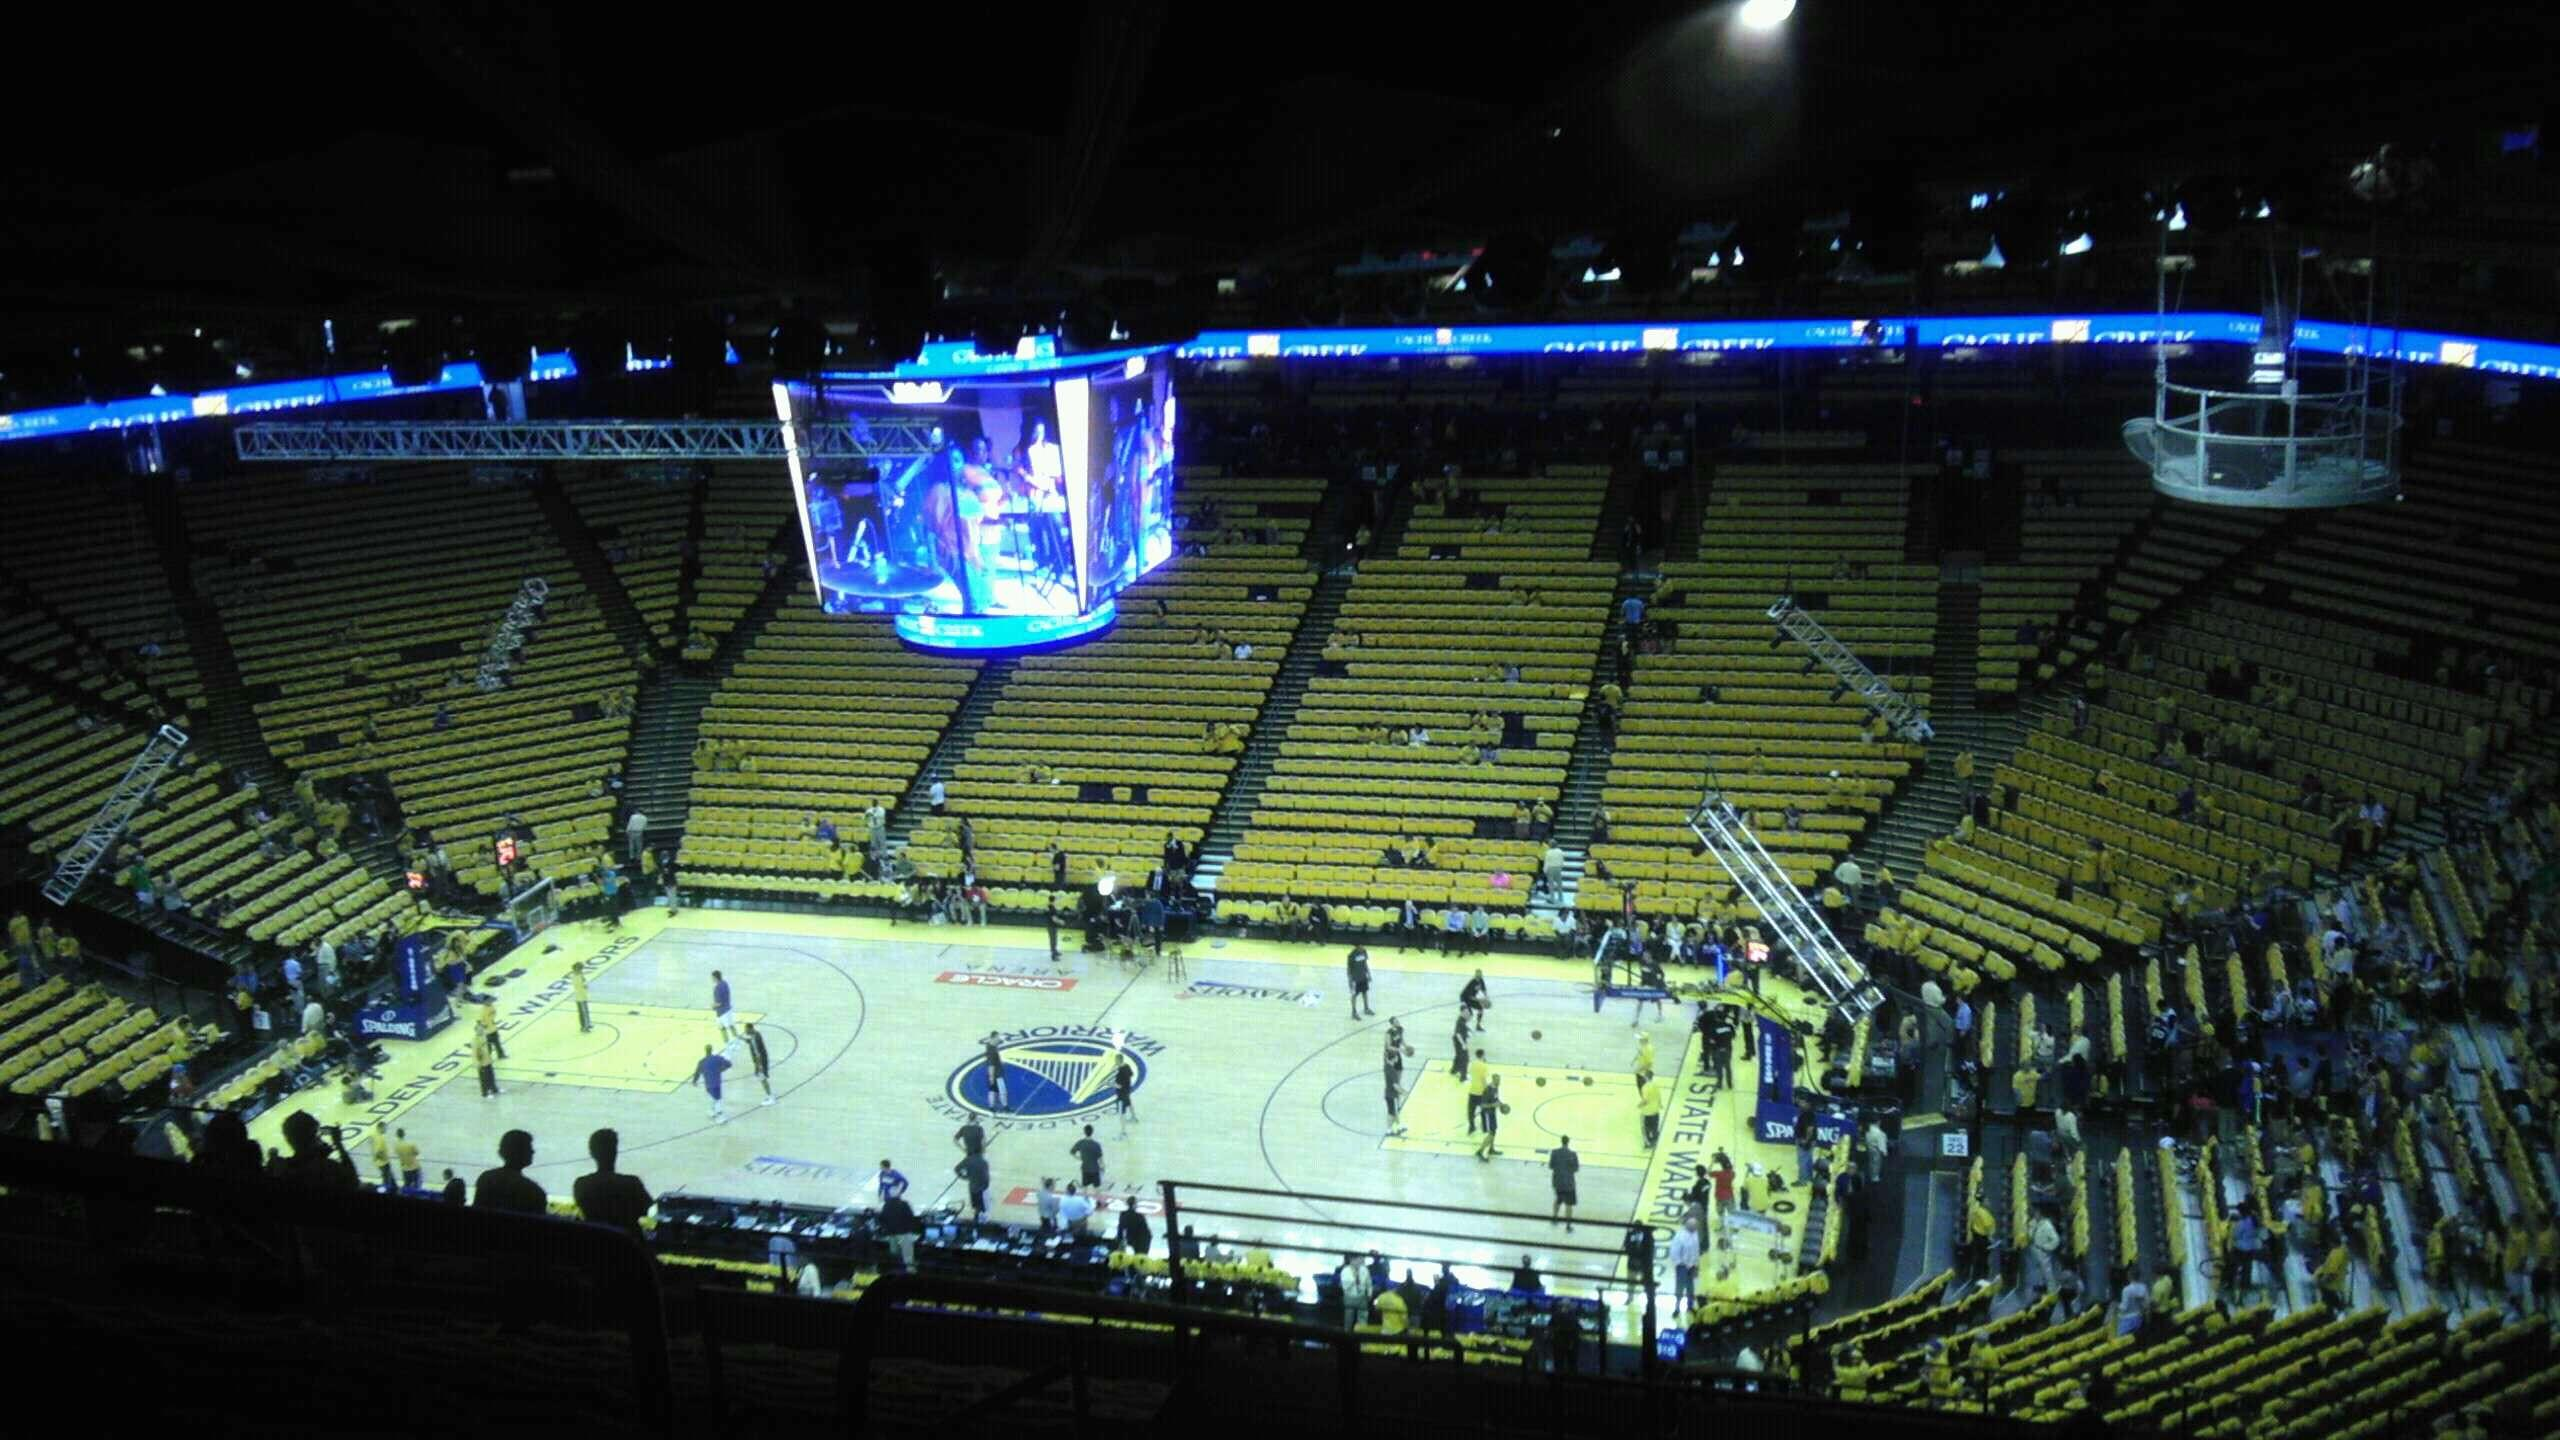 Oracle Arena Section 230 Row 16 Seat 22 Golden State